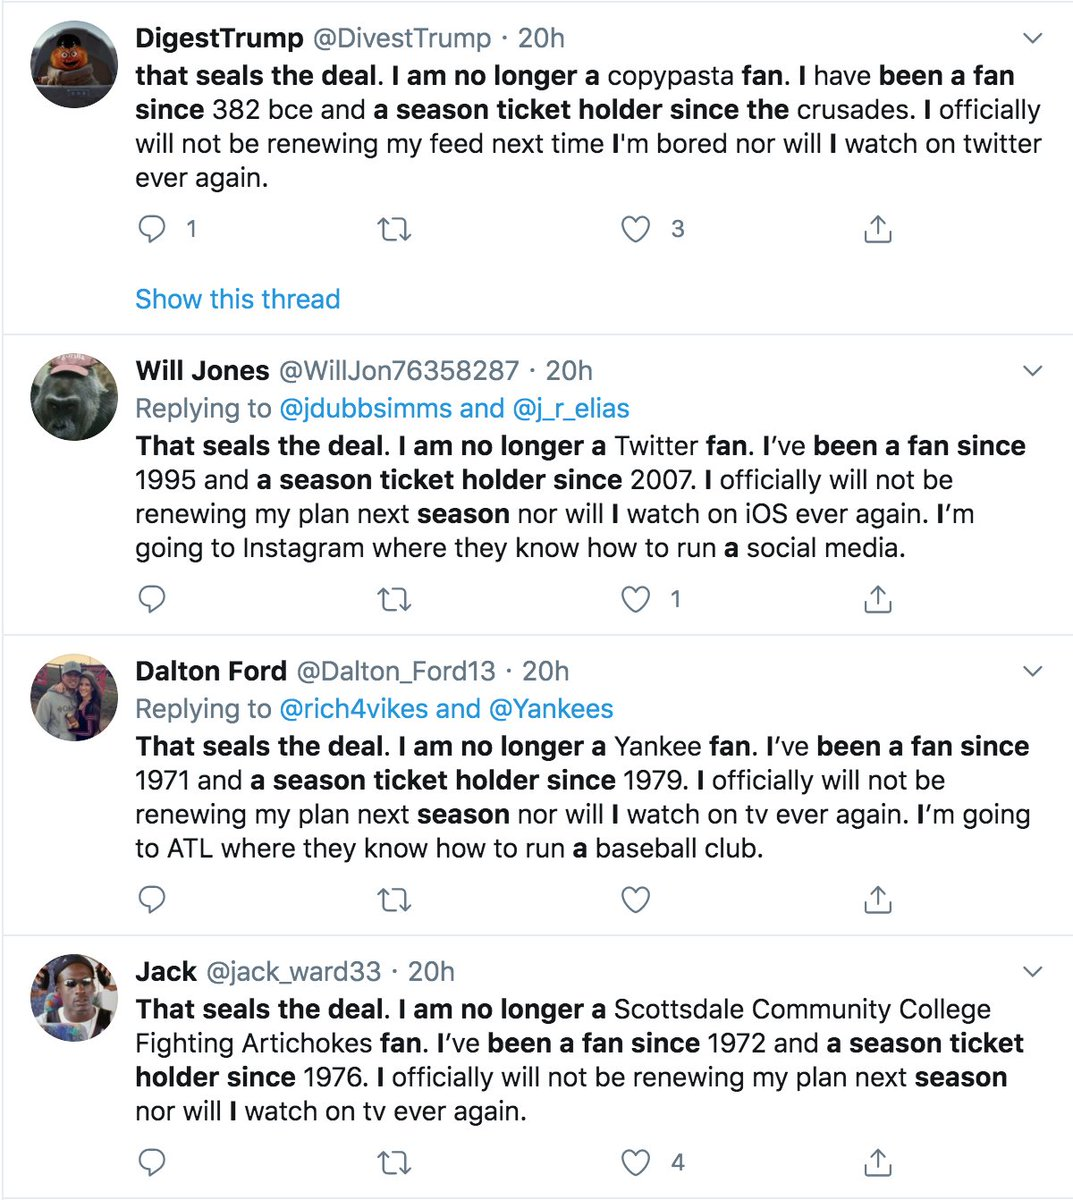 Discover And Read The Best Of Twitter Threads About Copypasta Said, none of these are mine! thread reader app